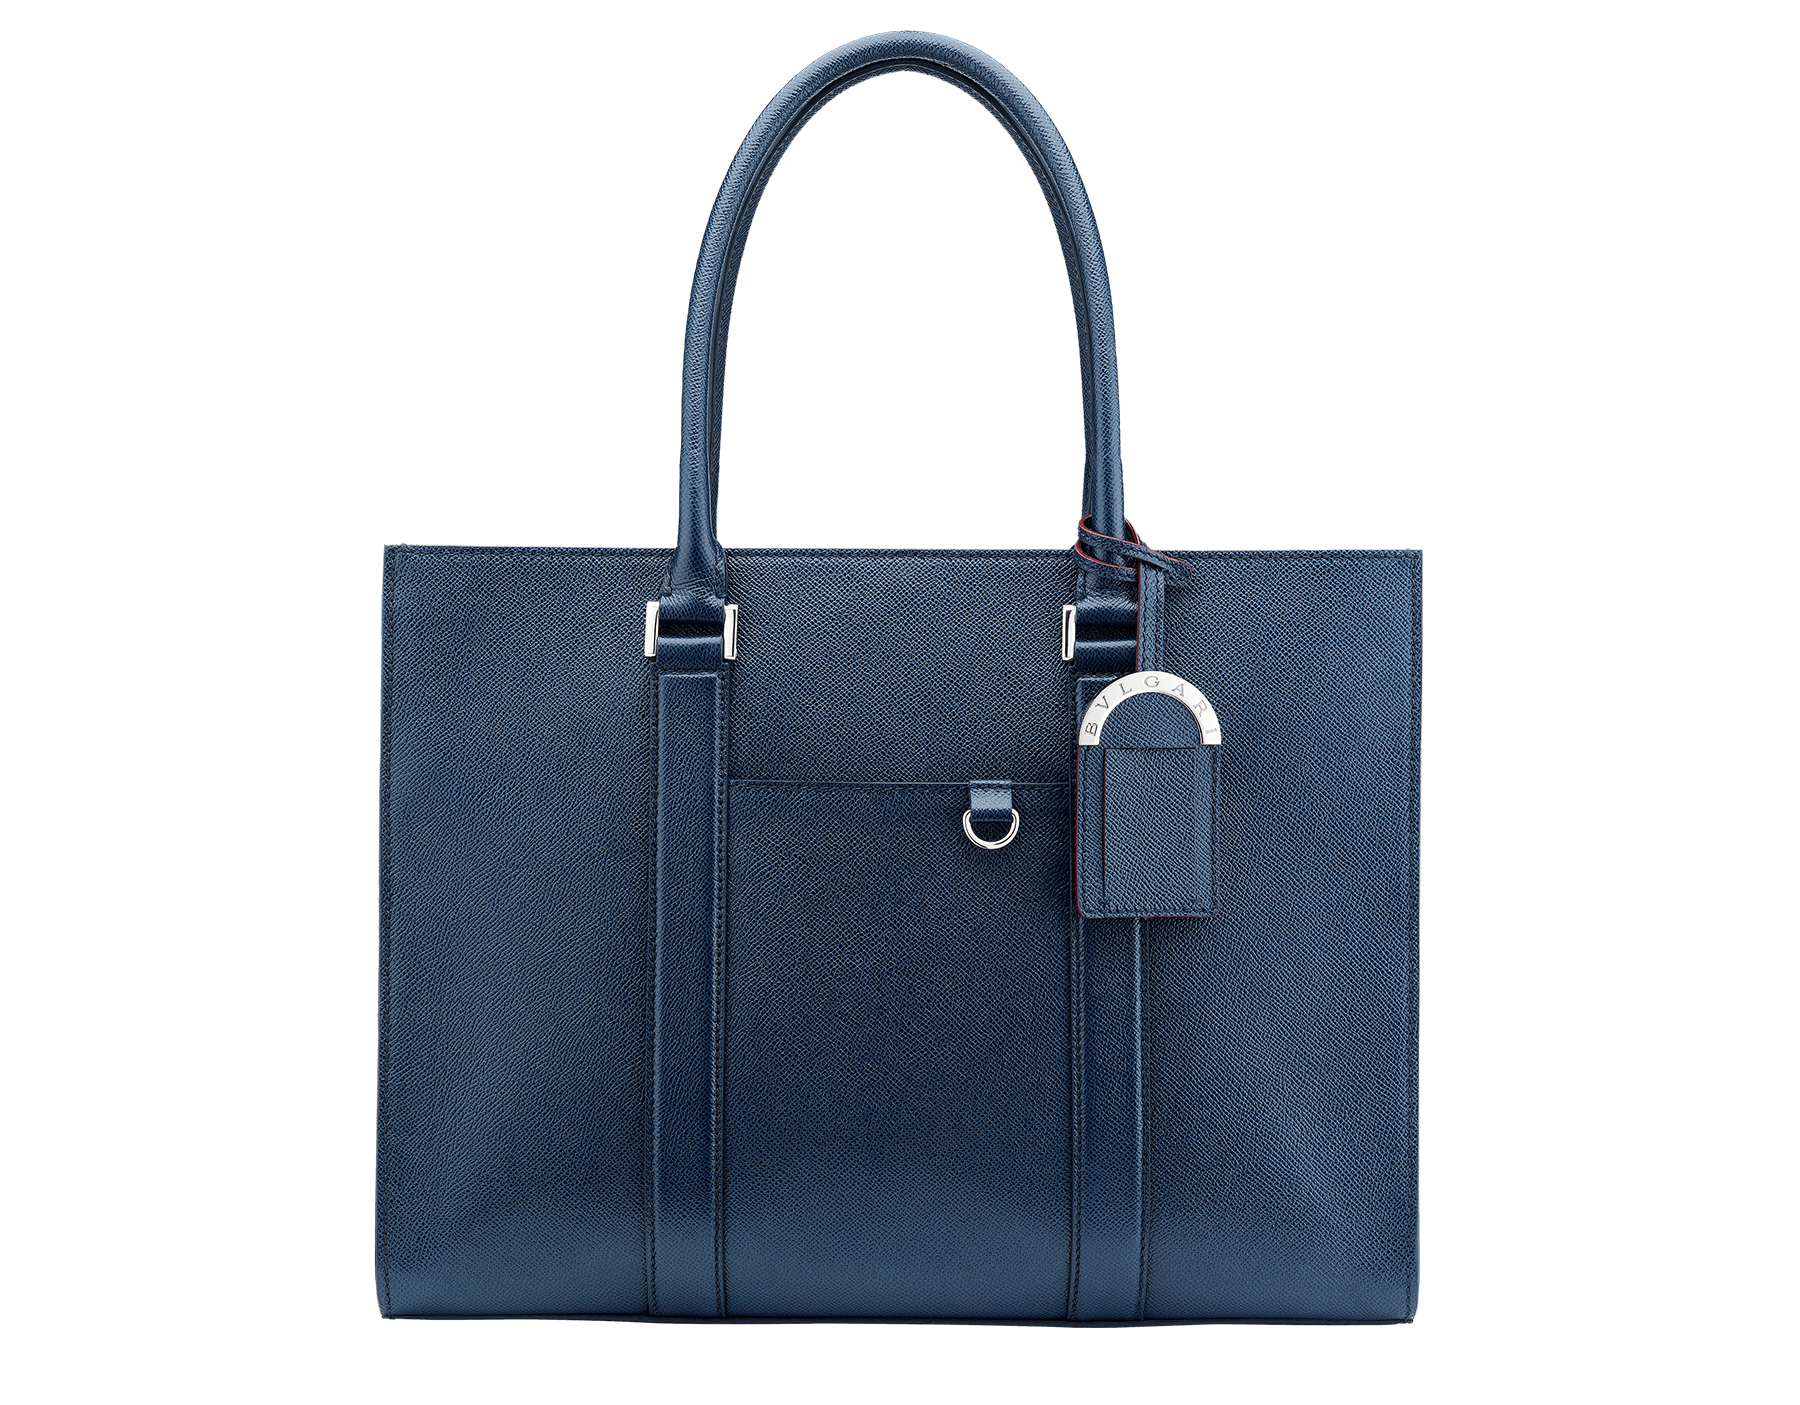 Tote bag in denim sapphire grain calf leather with brass palladium plated hardware. One zipped pocket, three open pockets and Bulgari logo metal tag inside. 39391 image 1